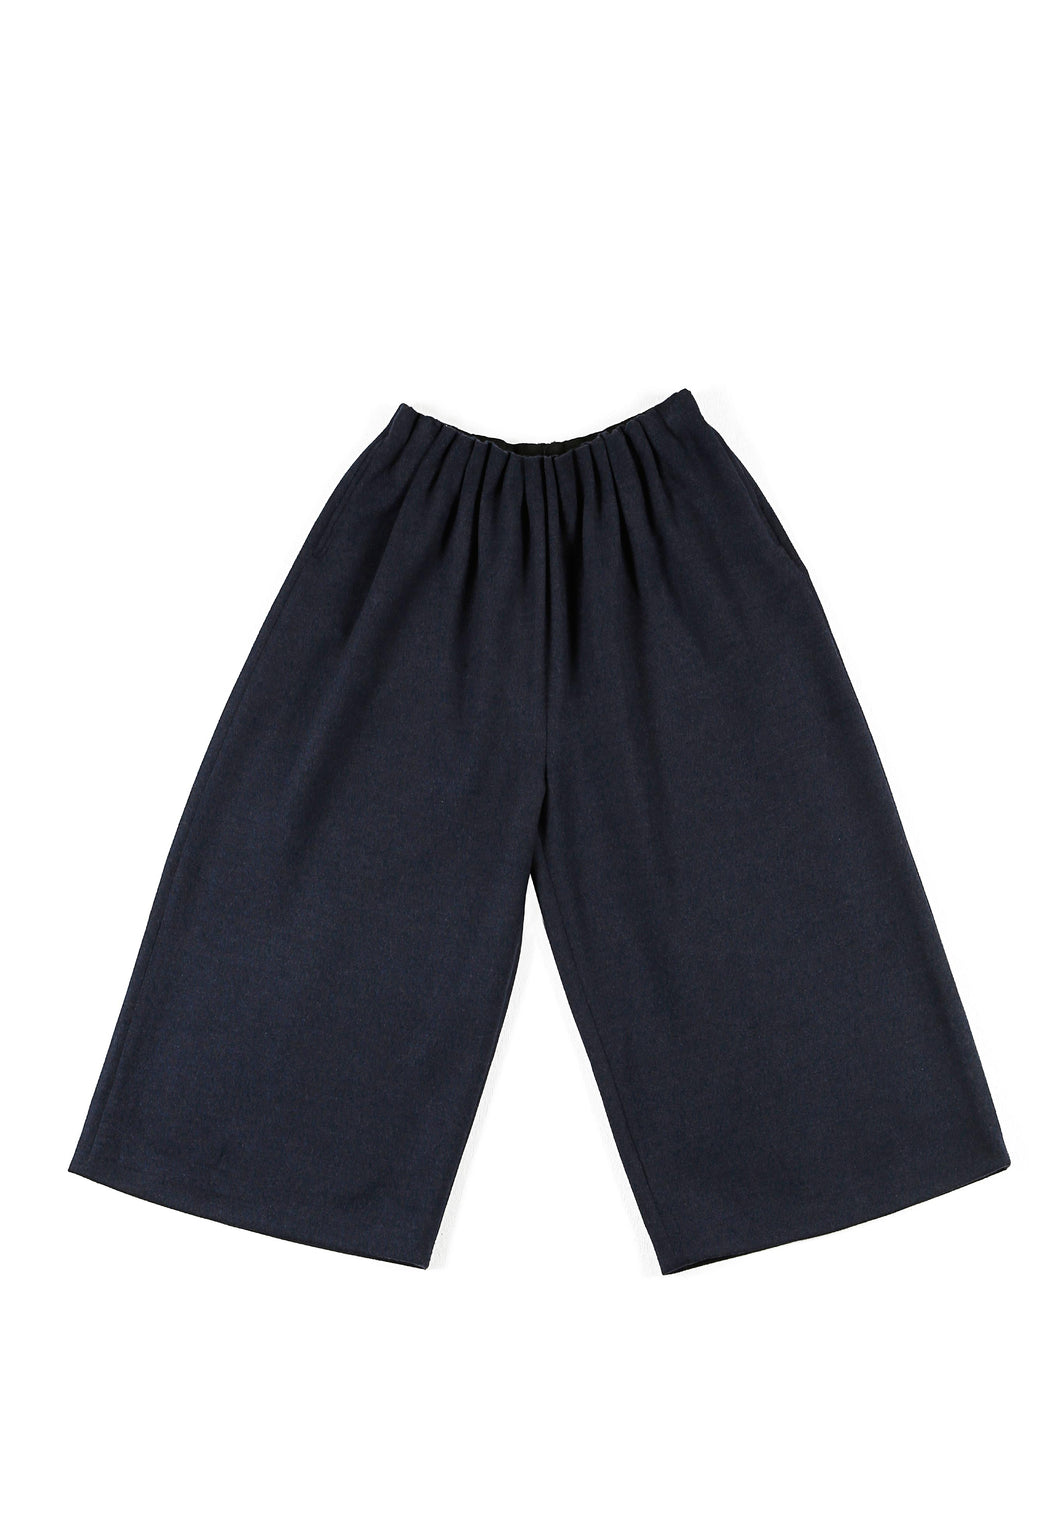 RIKA TROUSERS - NAVY - BOO PALA LONDON